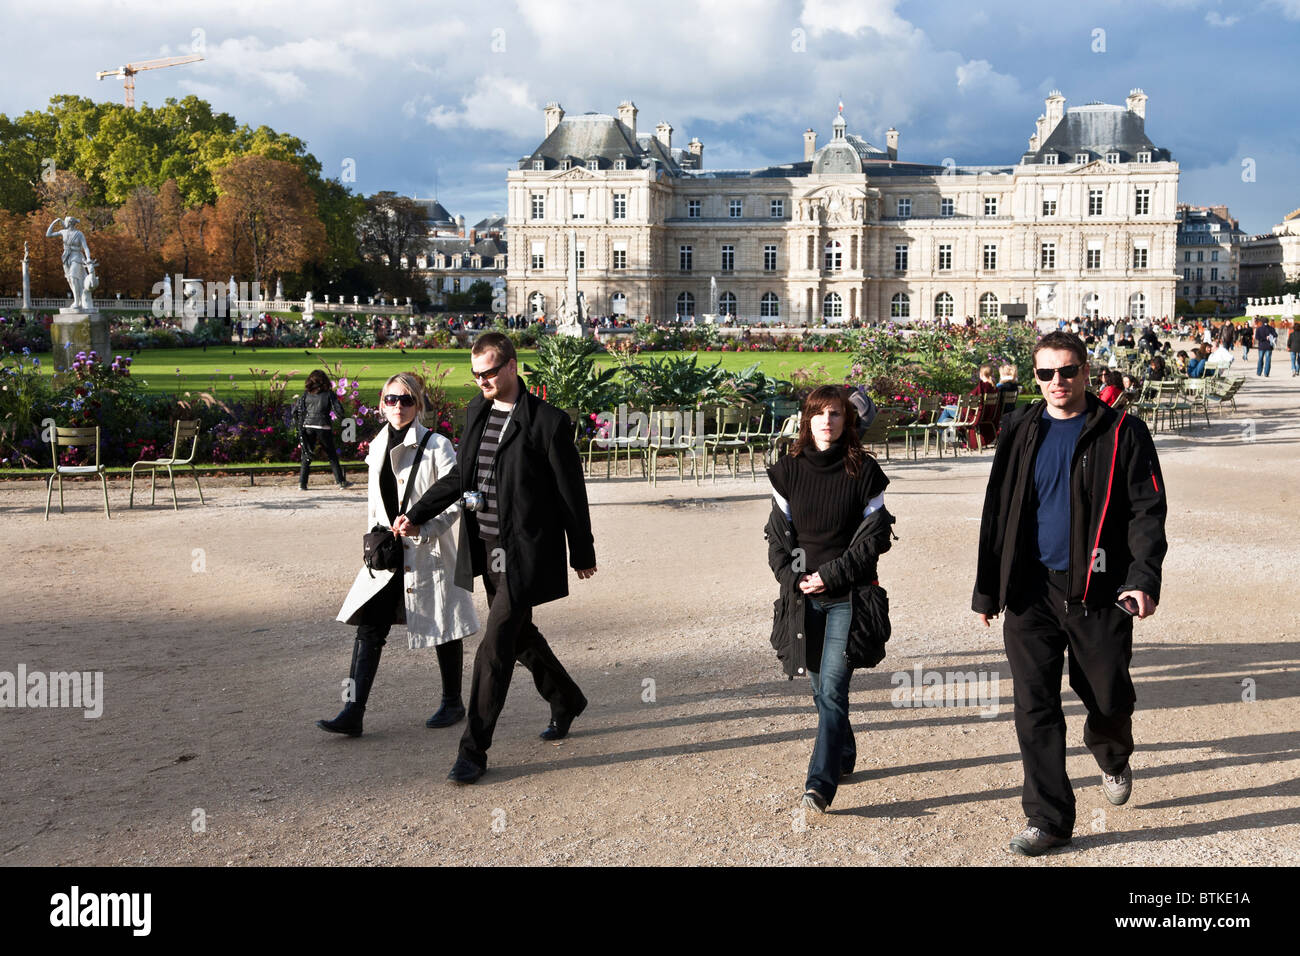 two young Parisian couples walking briskly in the gardens fronting the Luxembourg Palace on a beautiful autumn Sunday - Stock Image